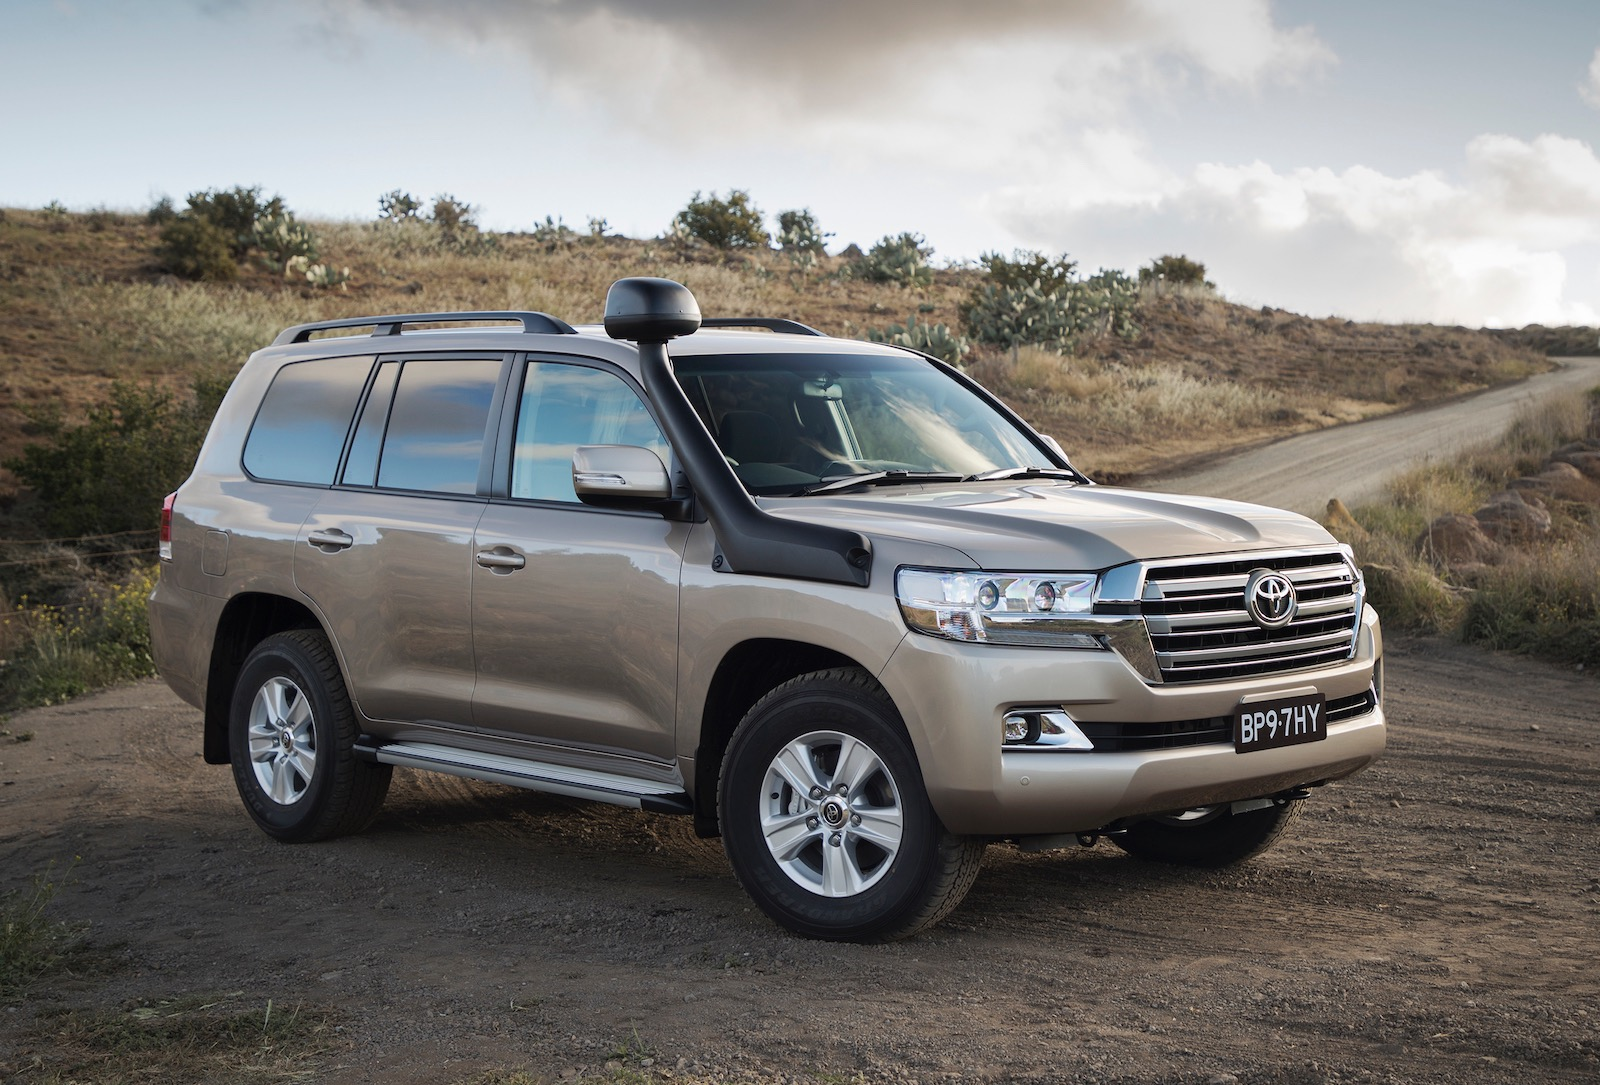 2019 Toyota Landcruiser 200 Series Updates Announced For